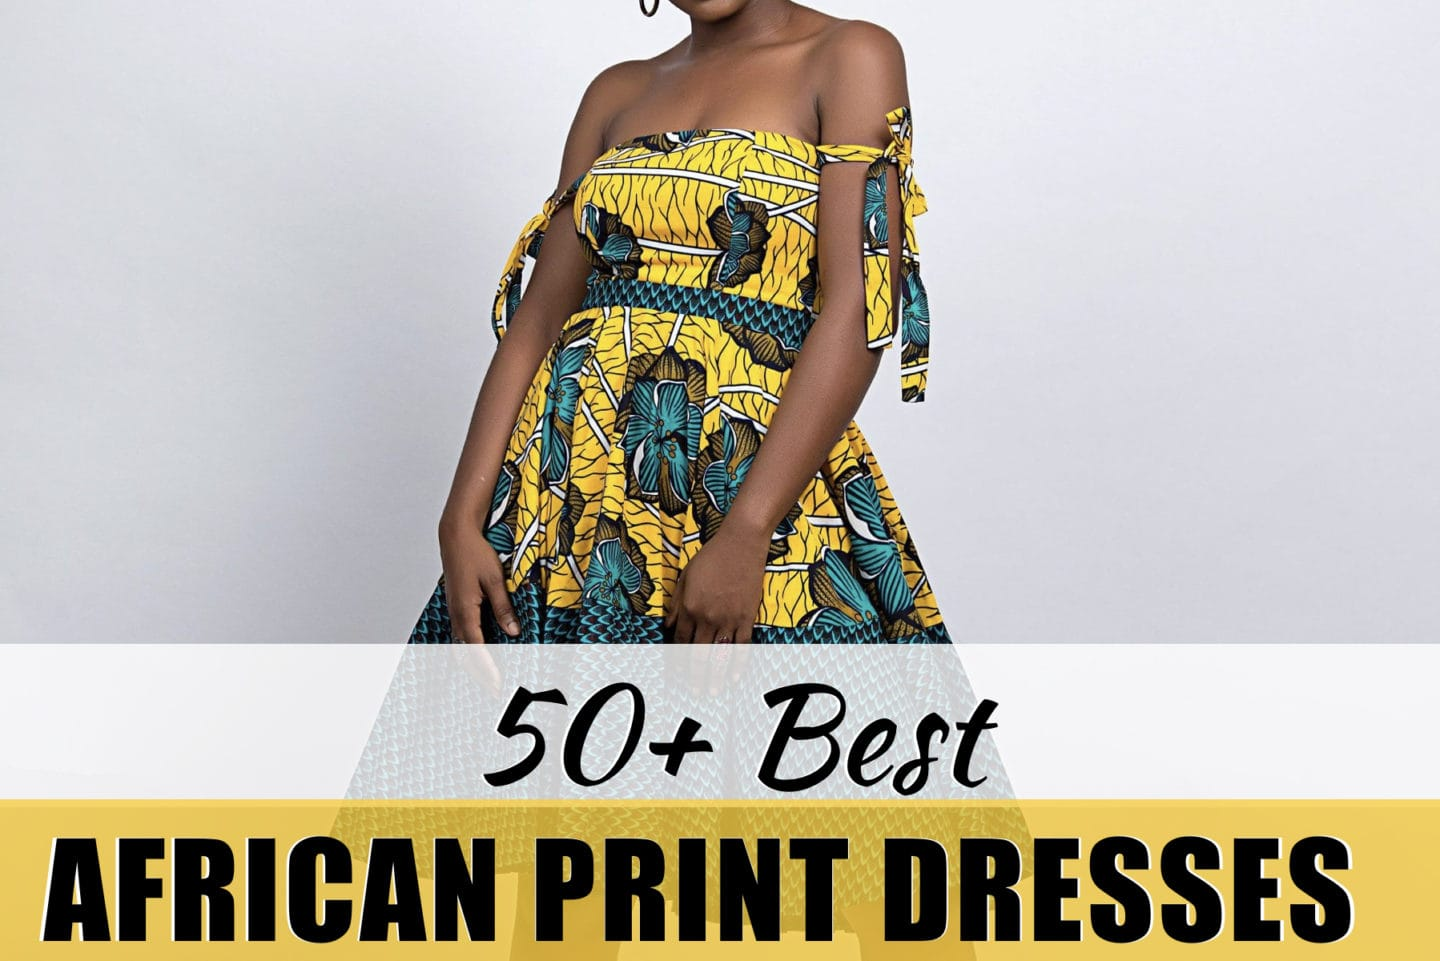 dd40bcad6274 The best selection of over 50 best African print dresses for special  occasions. These dresses